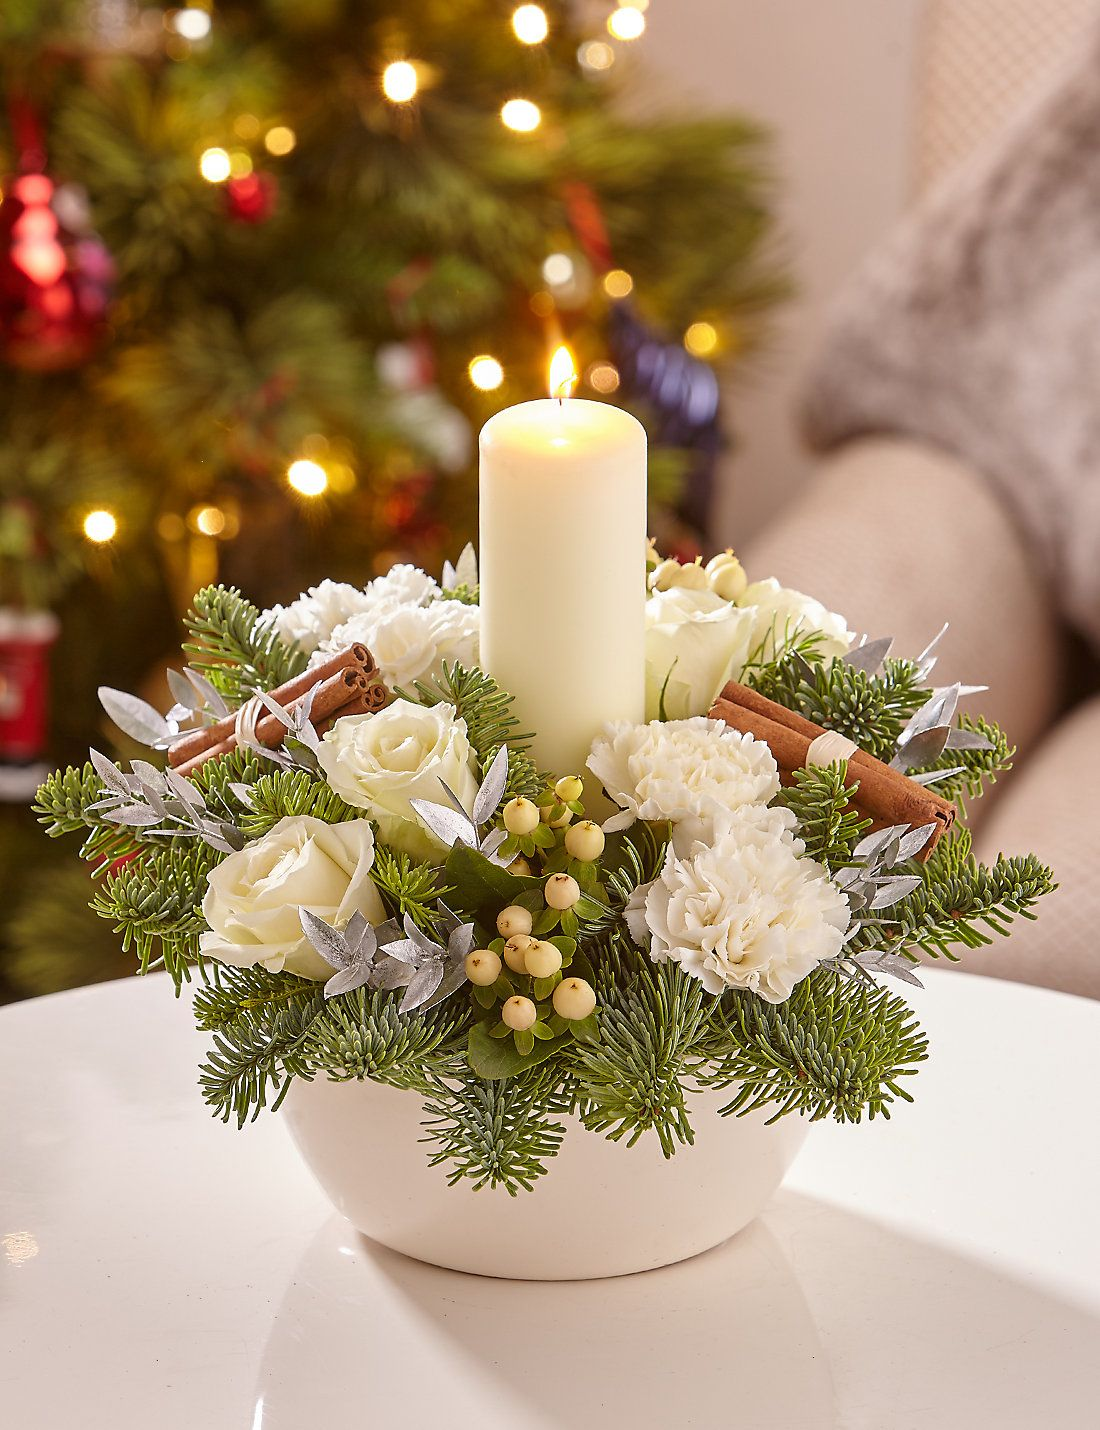 How to make christmas centerpieces with ice - Wallpaper